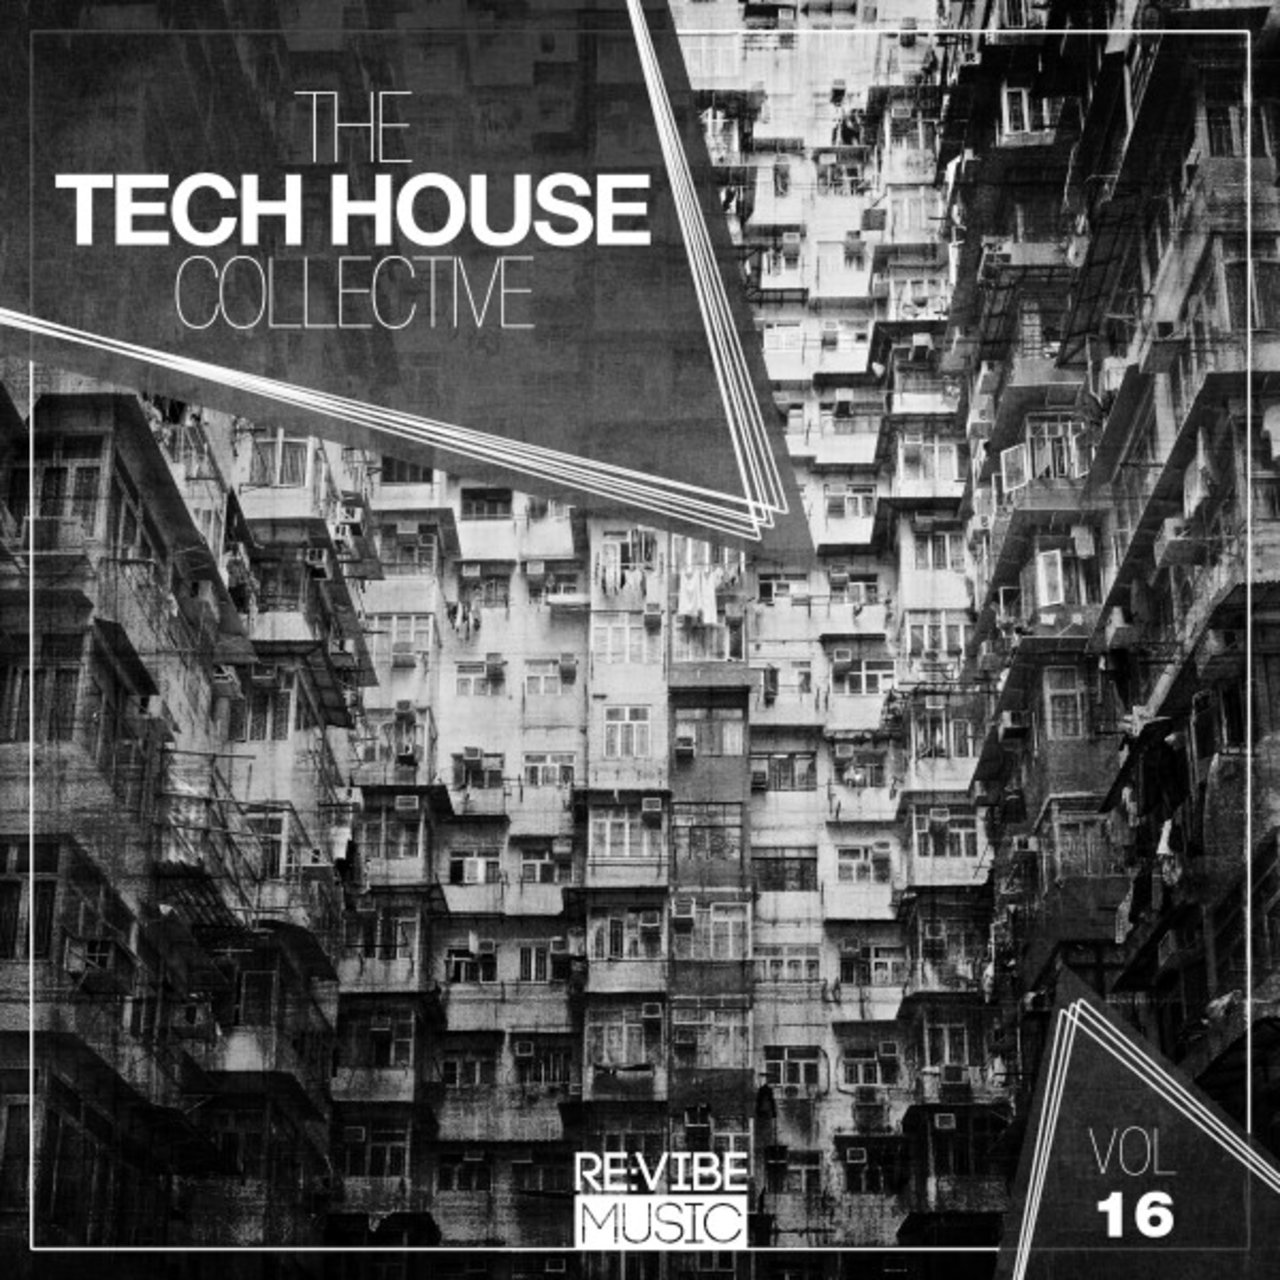 The Tech House Collective, Vol. 16